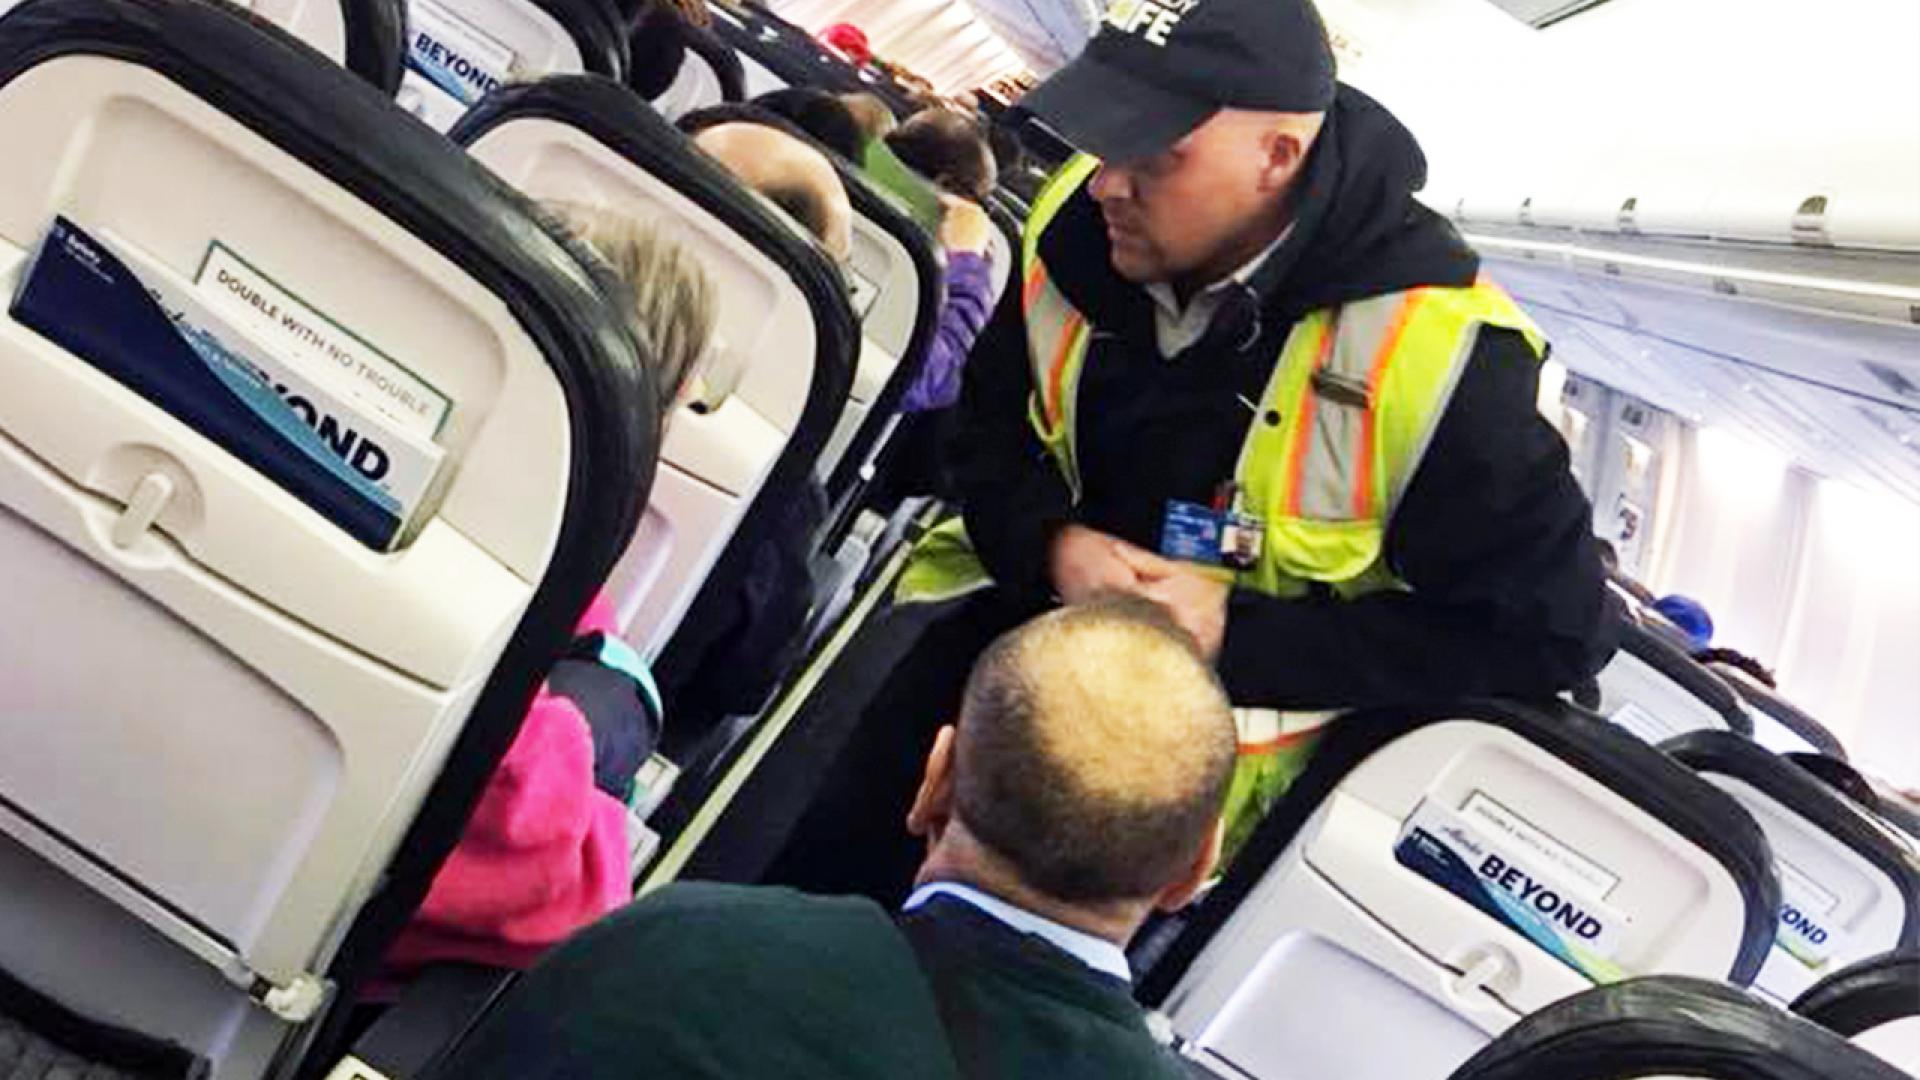 A flight crew is commended for the way they calmed an elderly passenger with dementia.